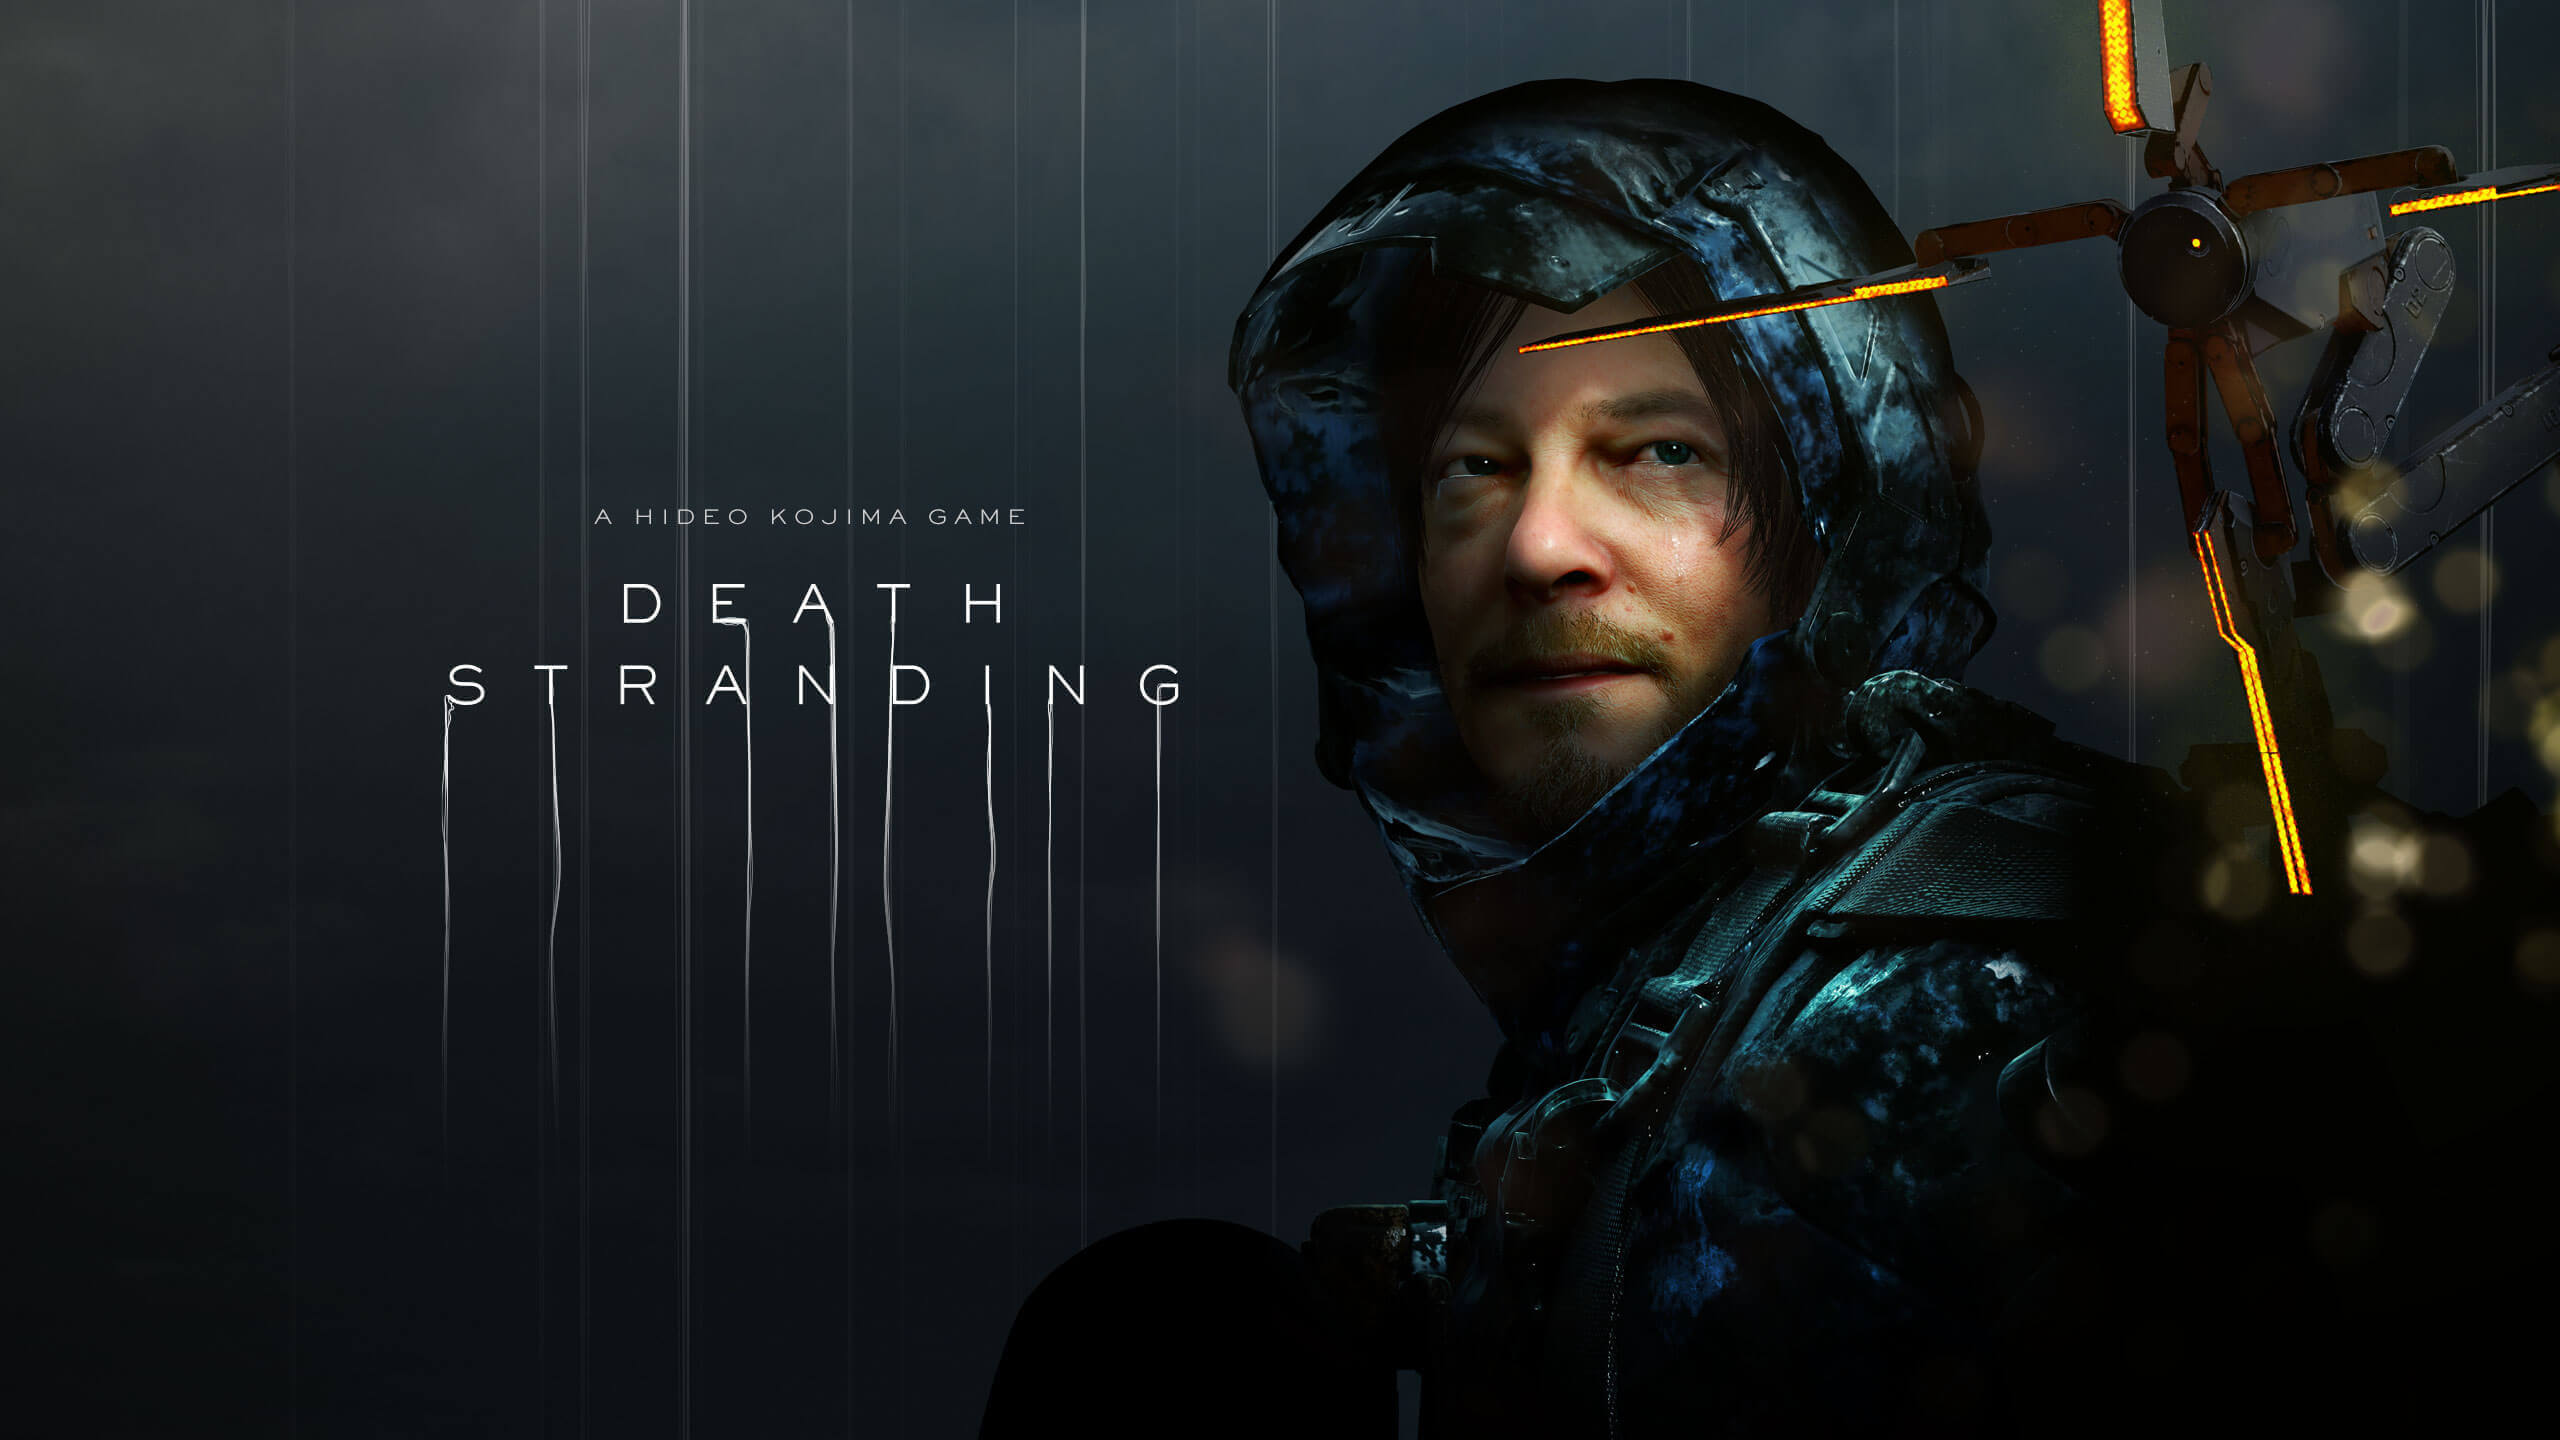 Death Stranding - From Kojima Productions and 505 Games